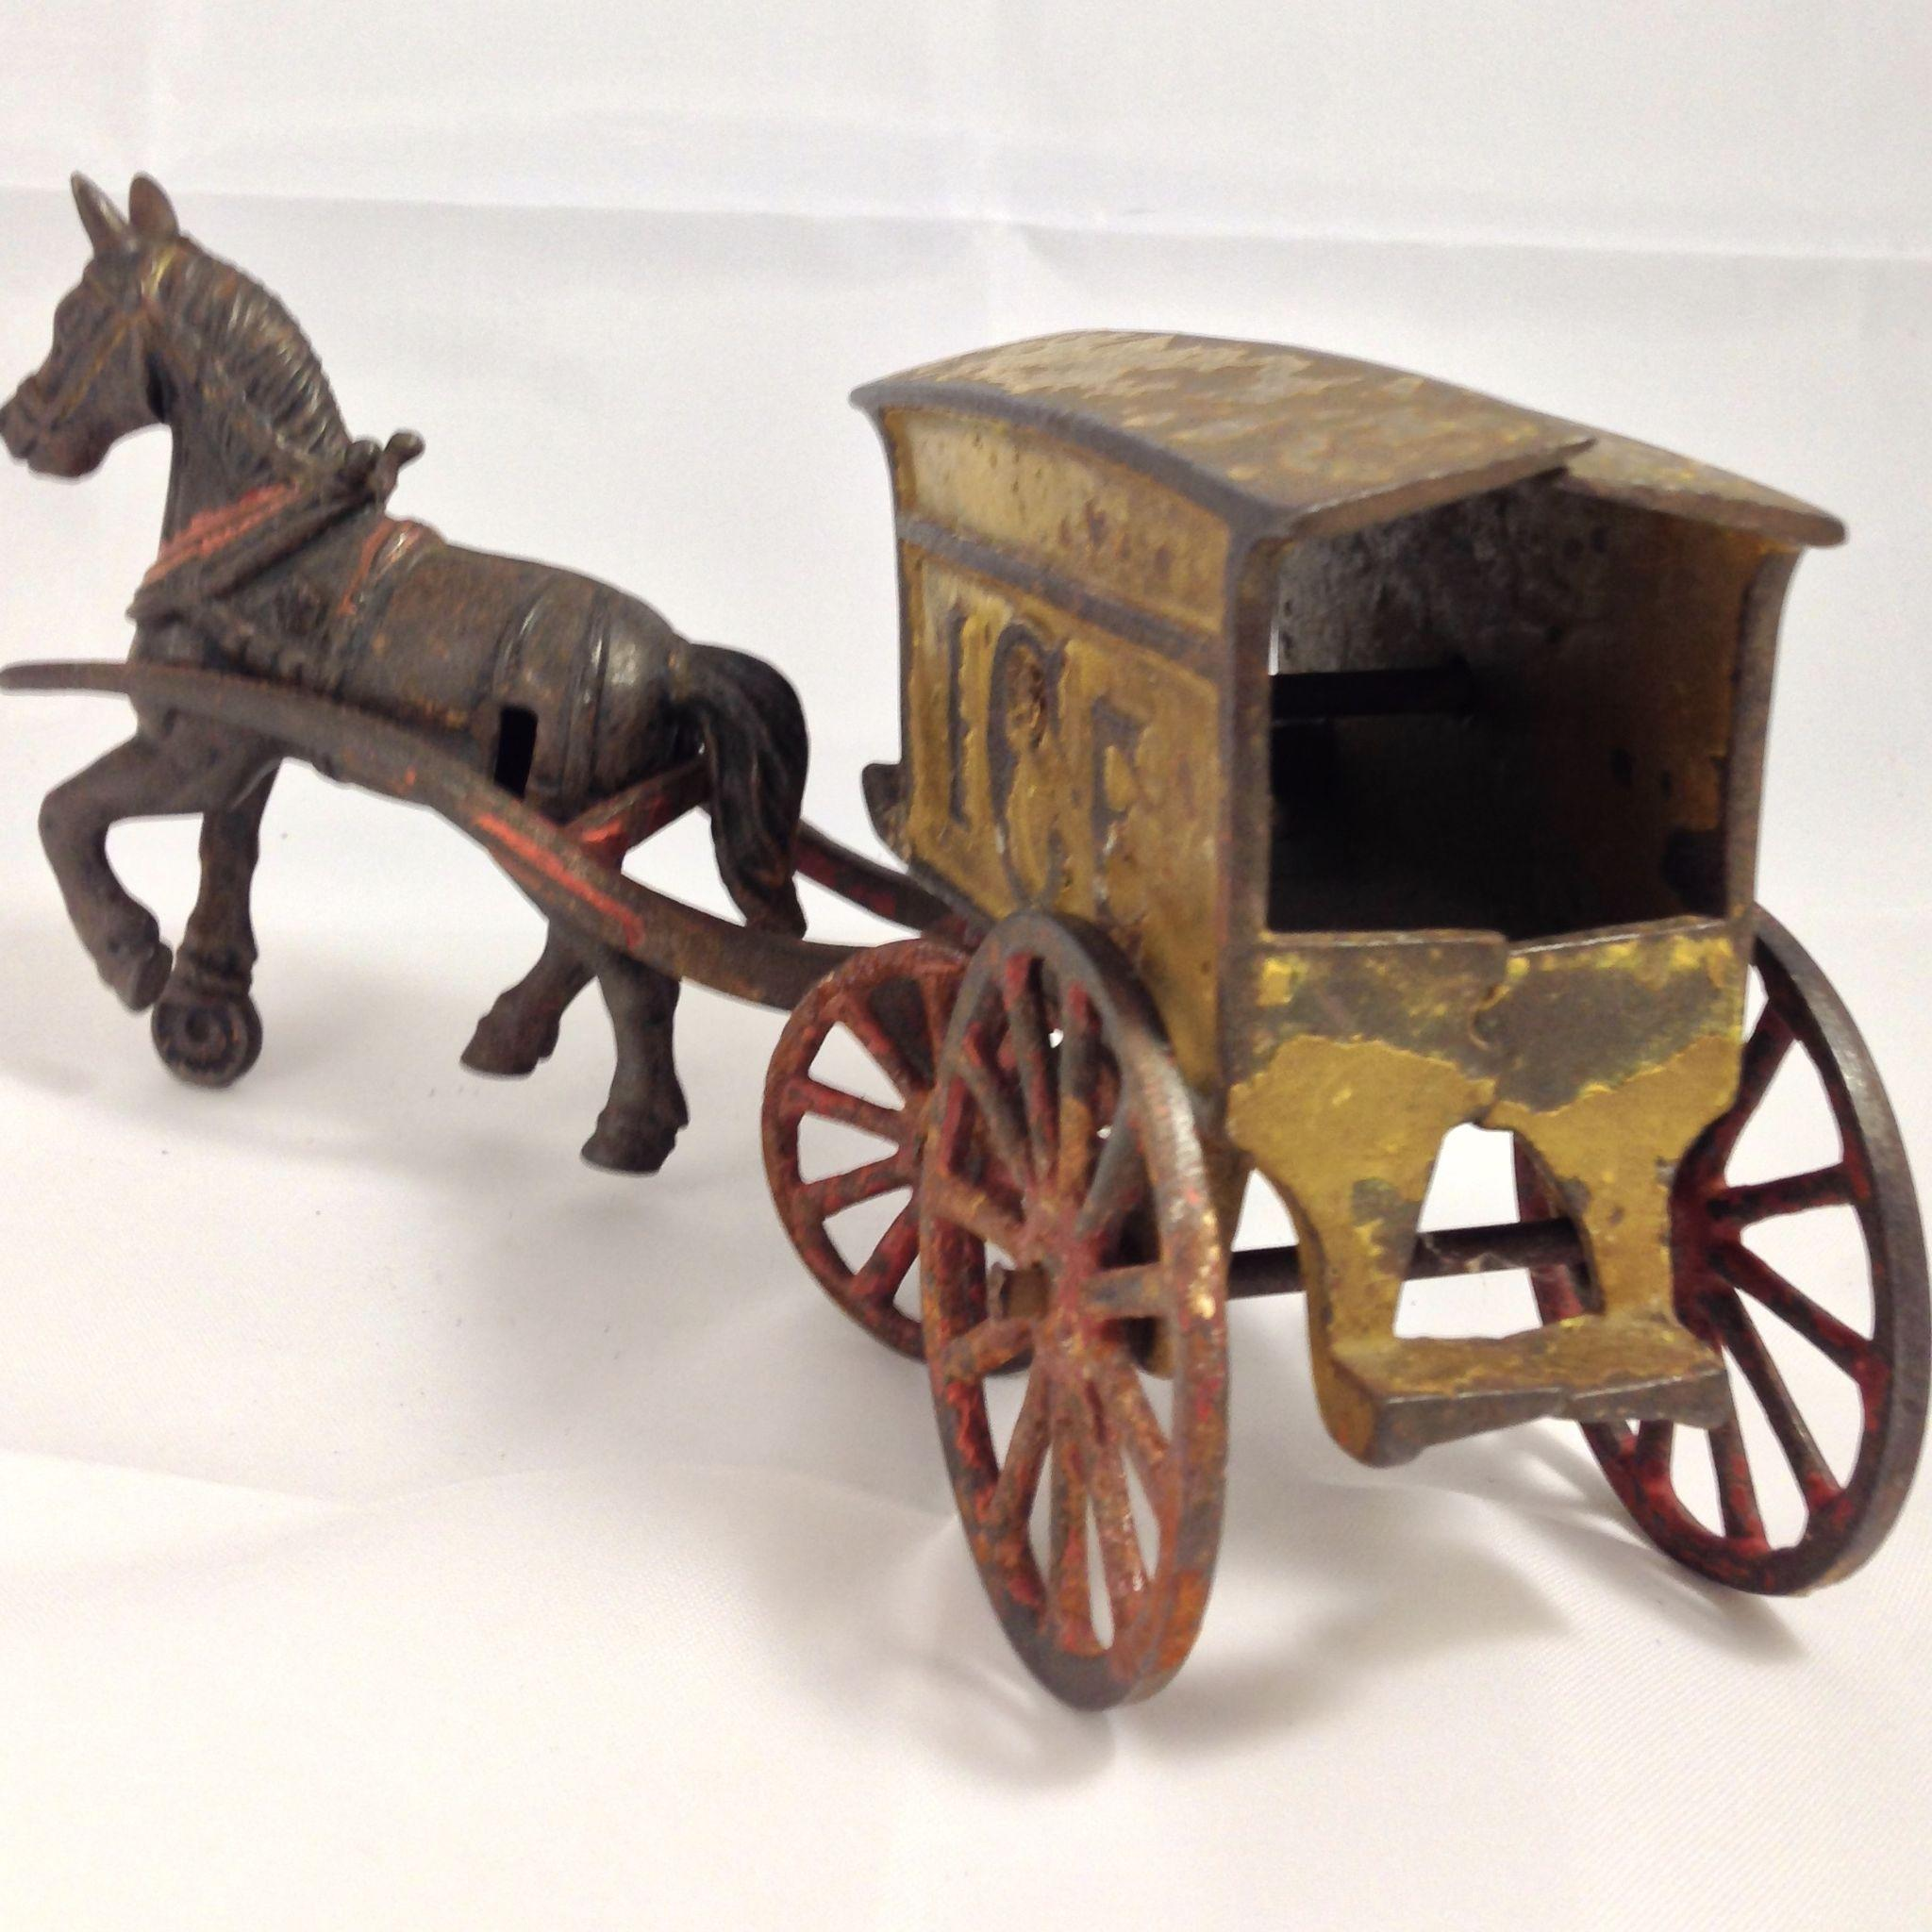 Antique 2 Antique Country American Wood Cast Iron Wagon Carriage Buggy - Roll over large image to magnify click large image to zoom